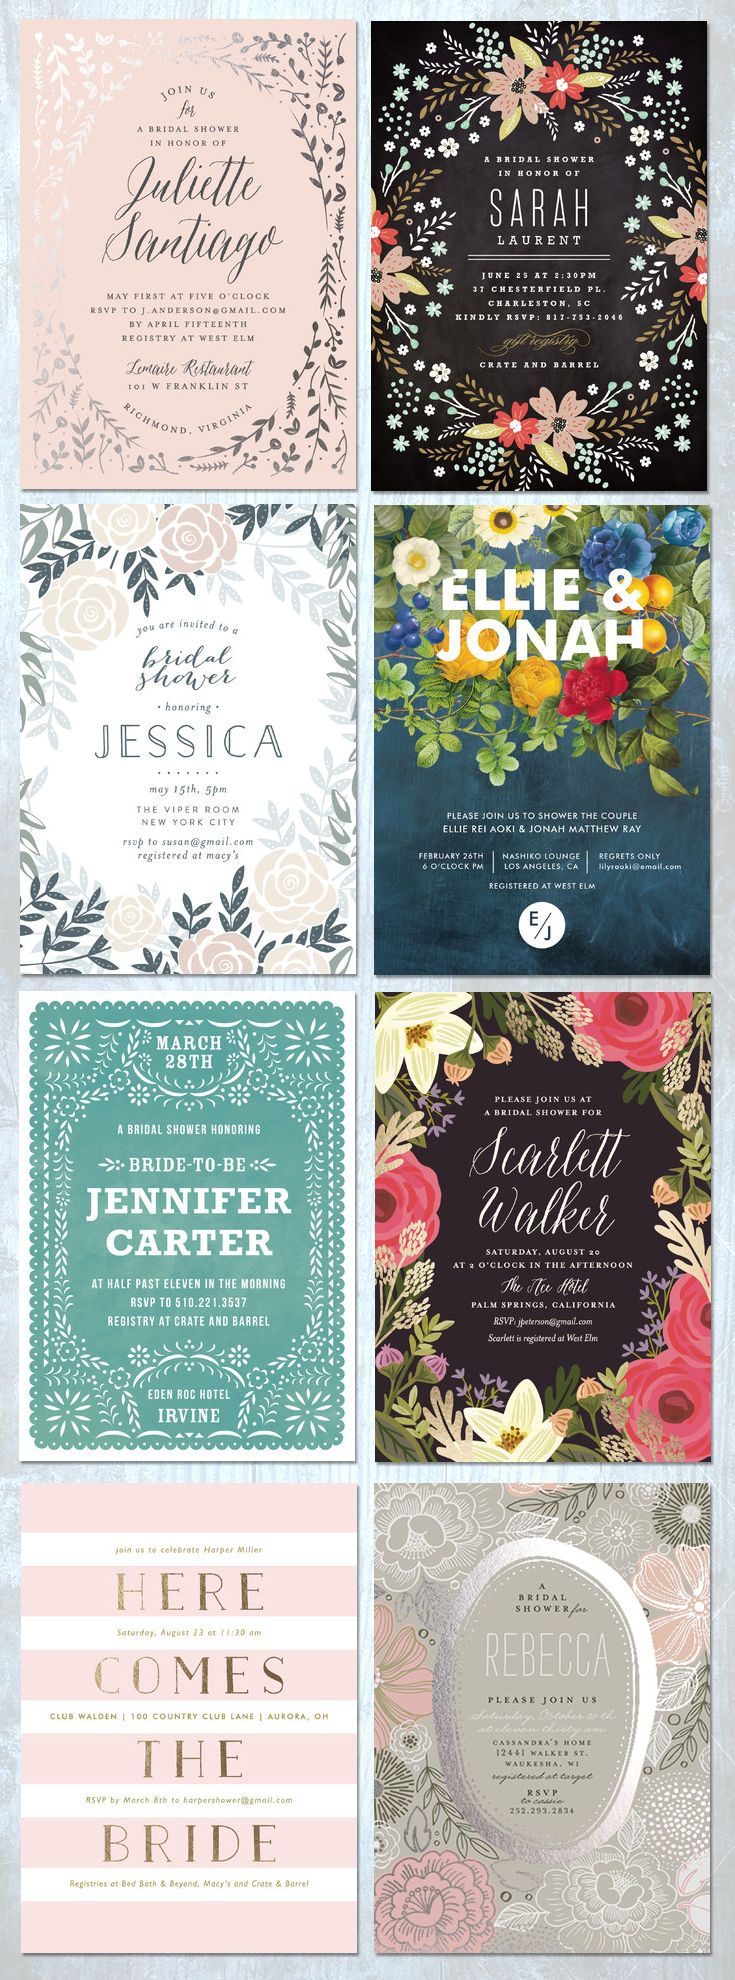 Minted Bridal Shower Invitations 29 best Save the Date